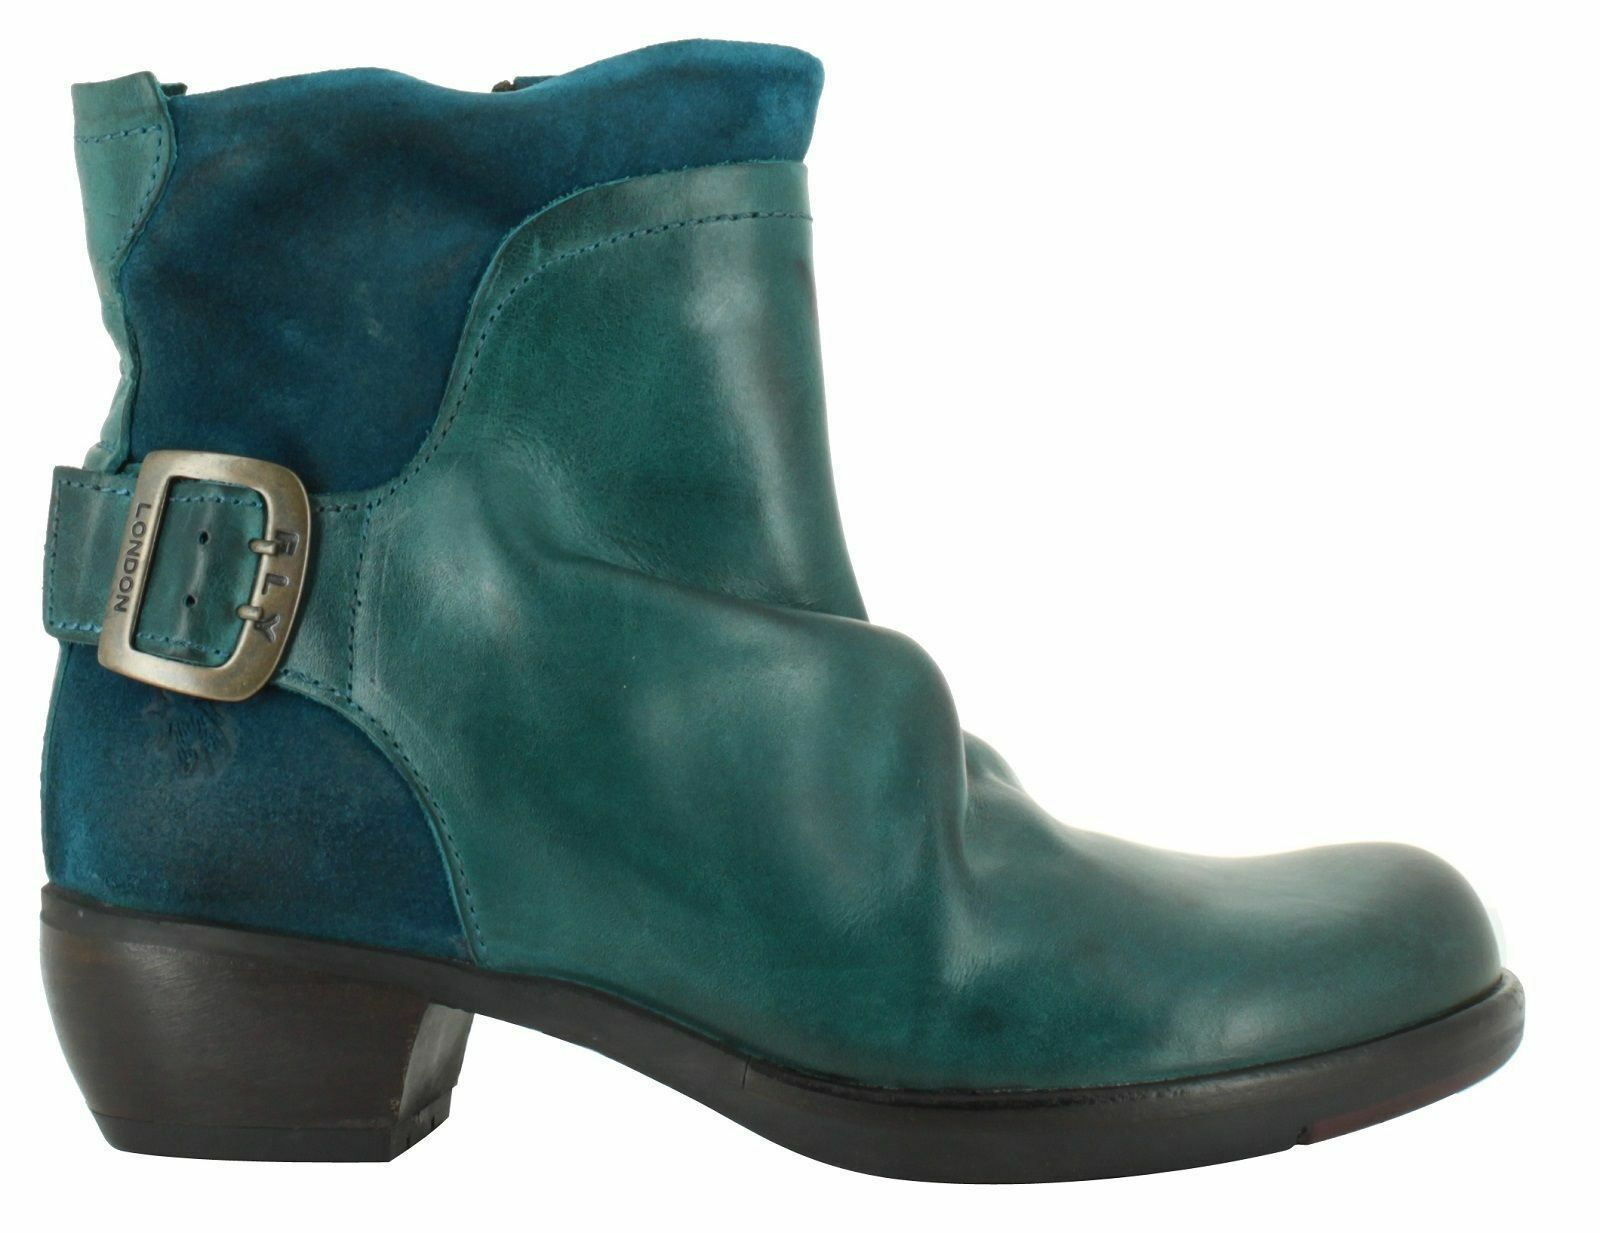 FLY LONDON MEL RUG LEATHER & SUEDE PETROL GREEN ANKLE Stiefel UK 4 EUR 37